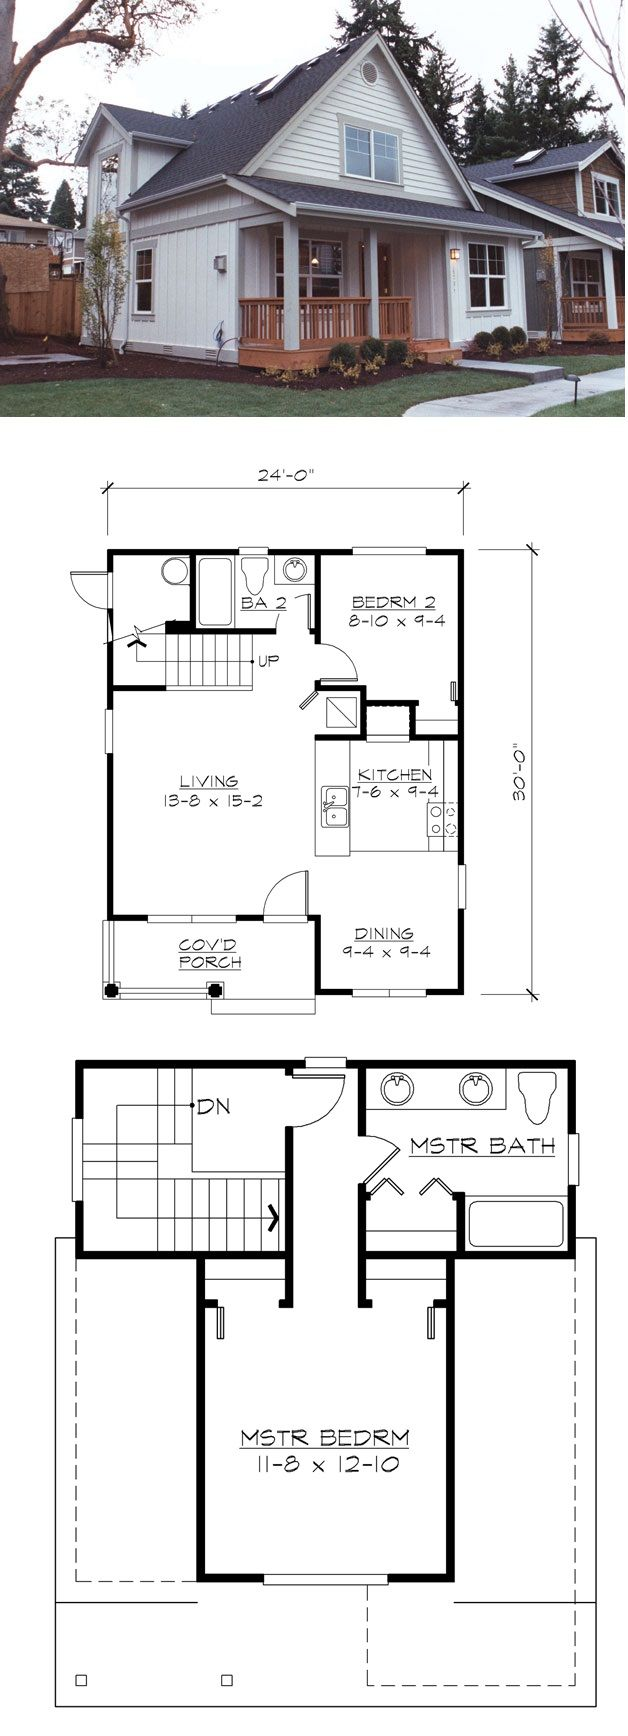 I hate my house layout